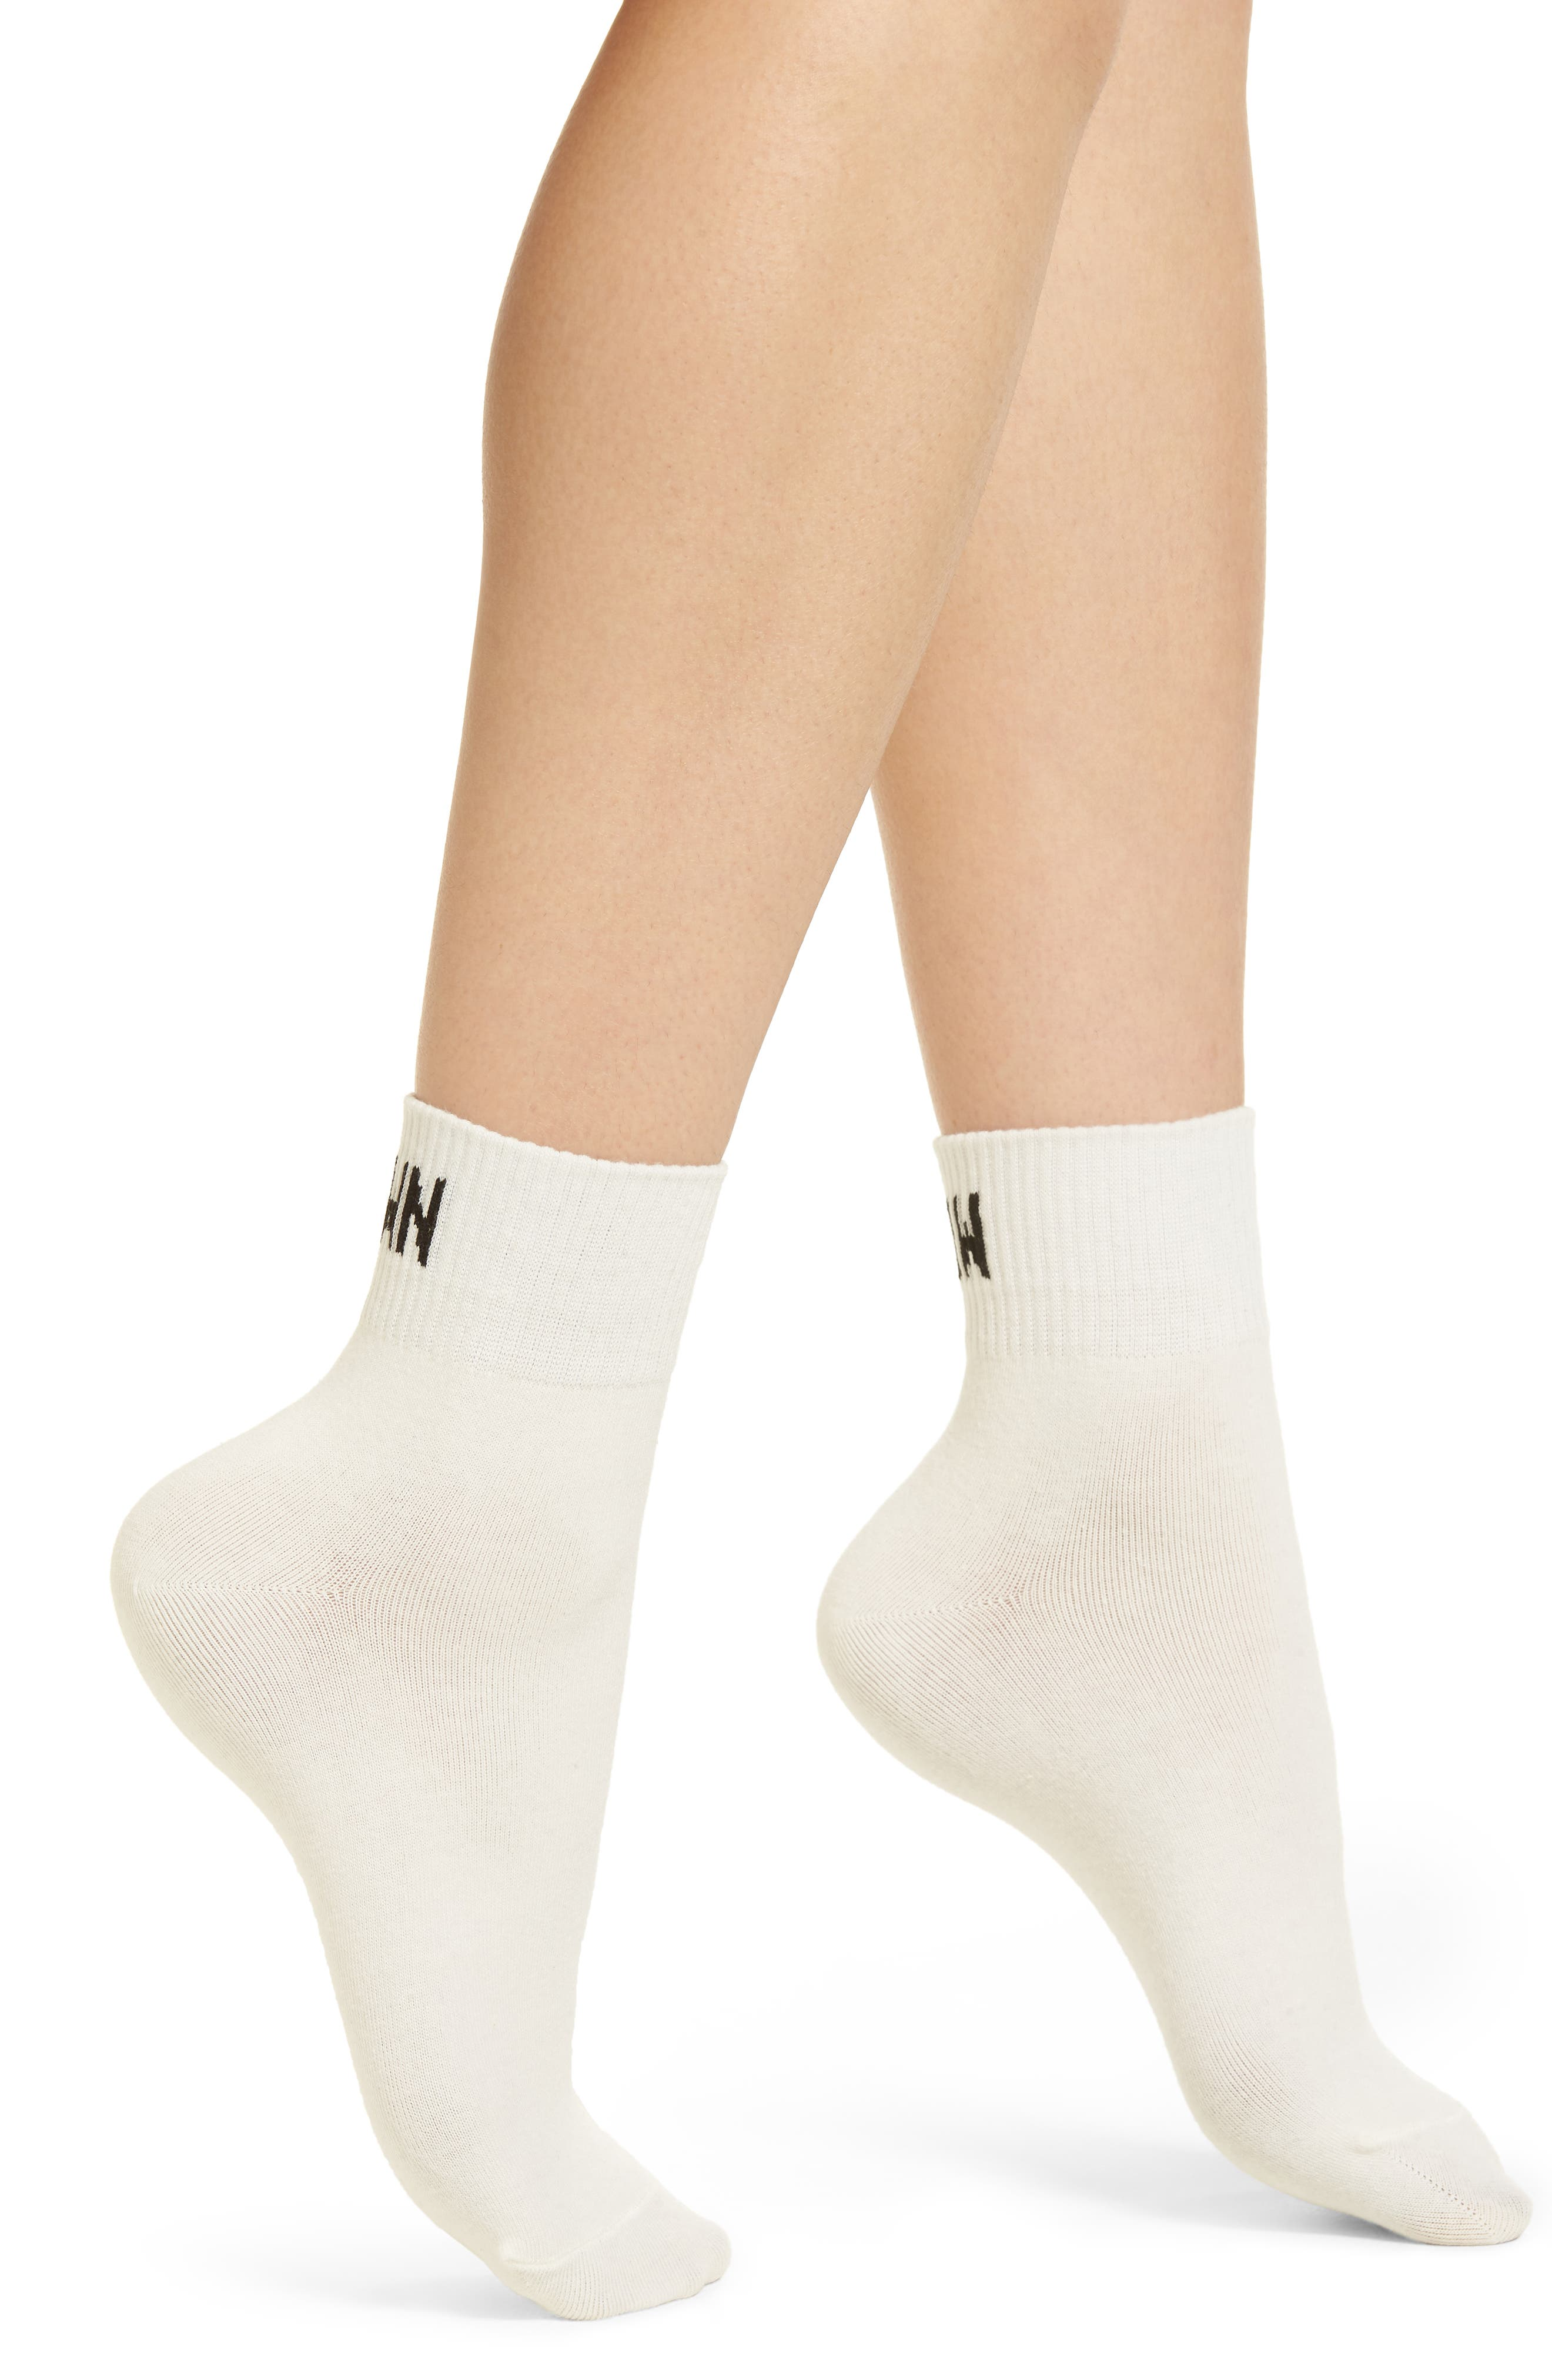 Slow Down Ankle Socks,                         Main,                         color, White